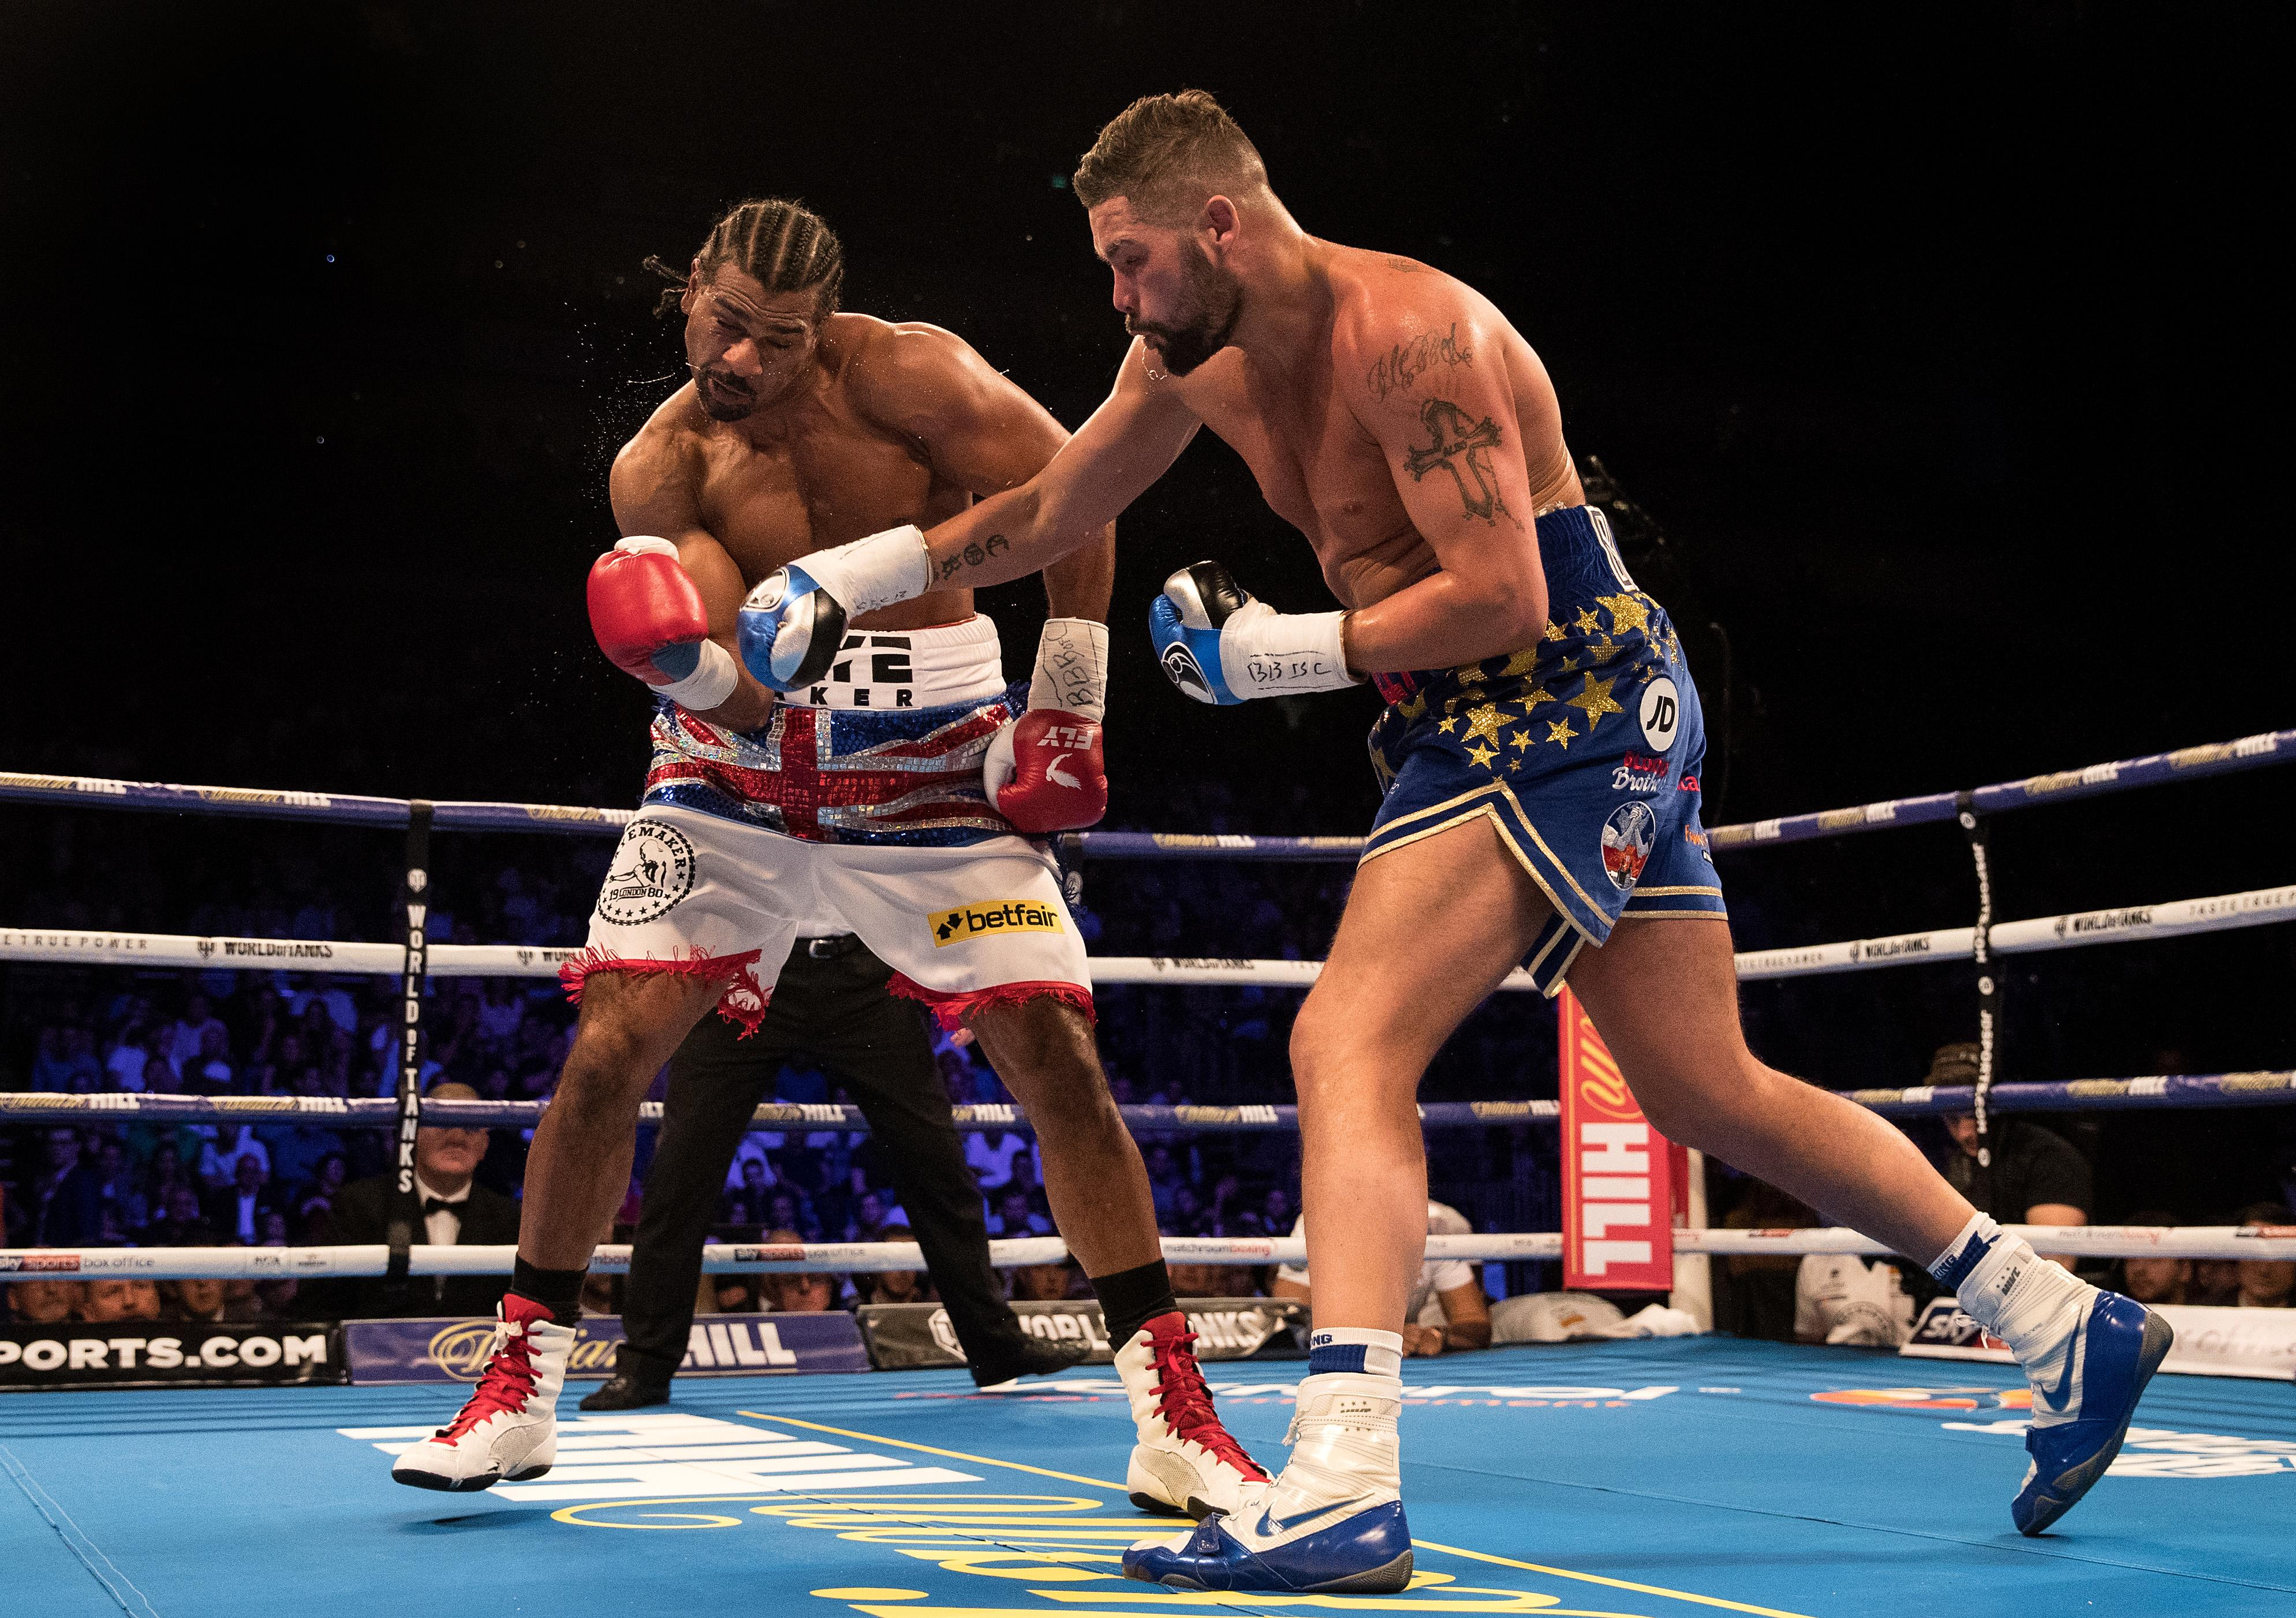 Haye retired after losing to Bellew for the second time